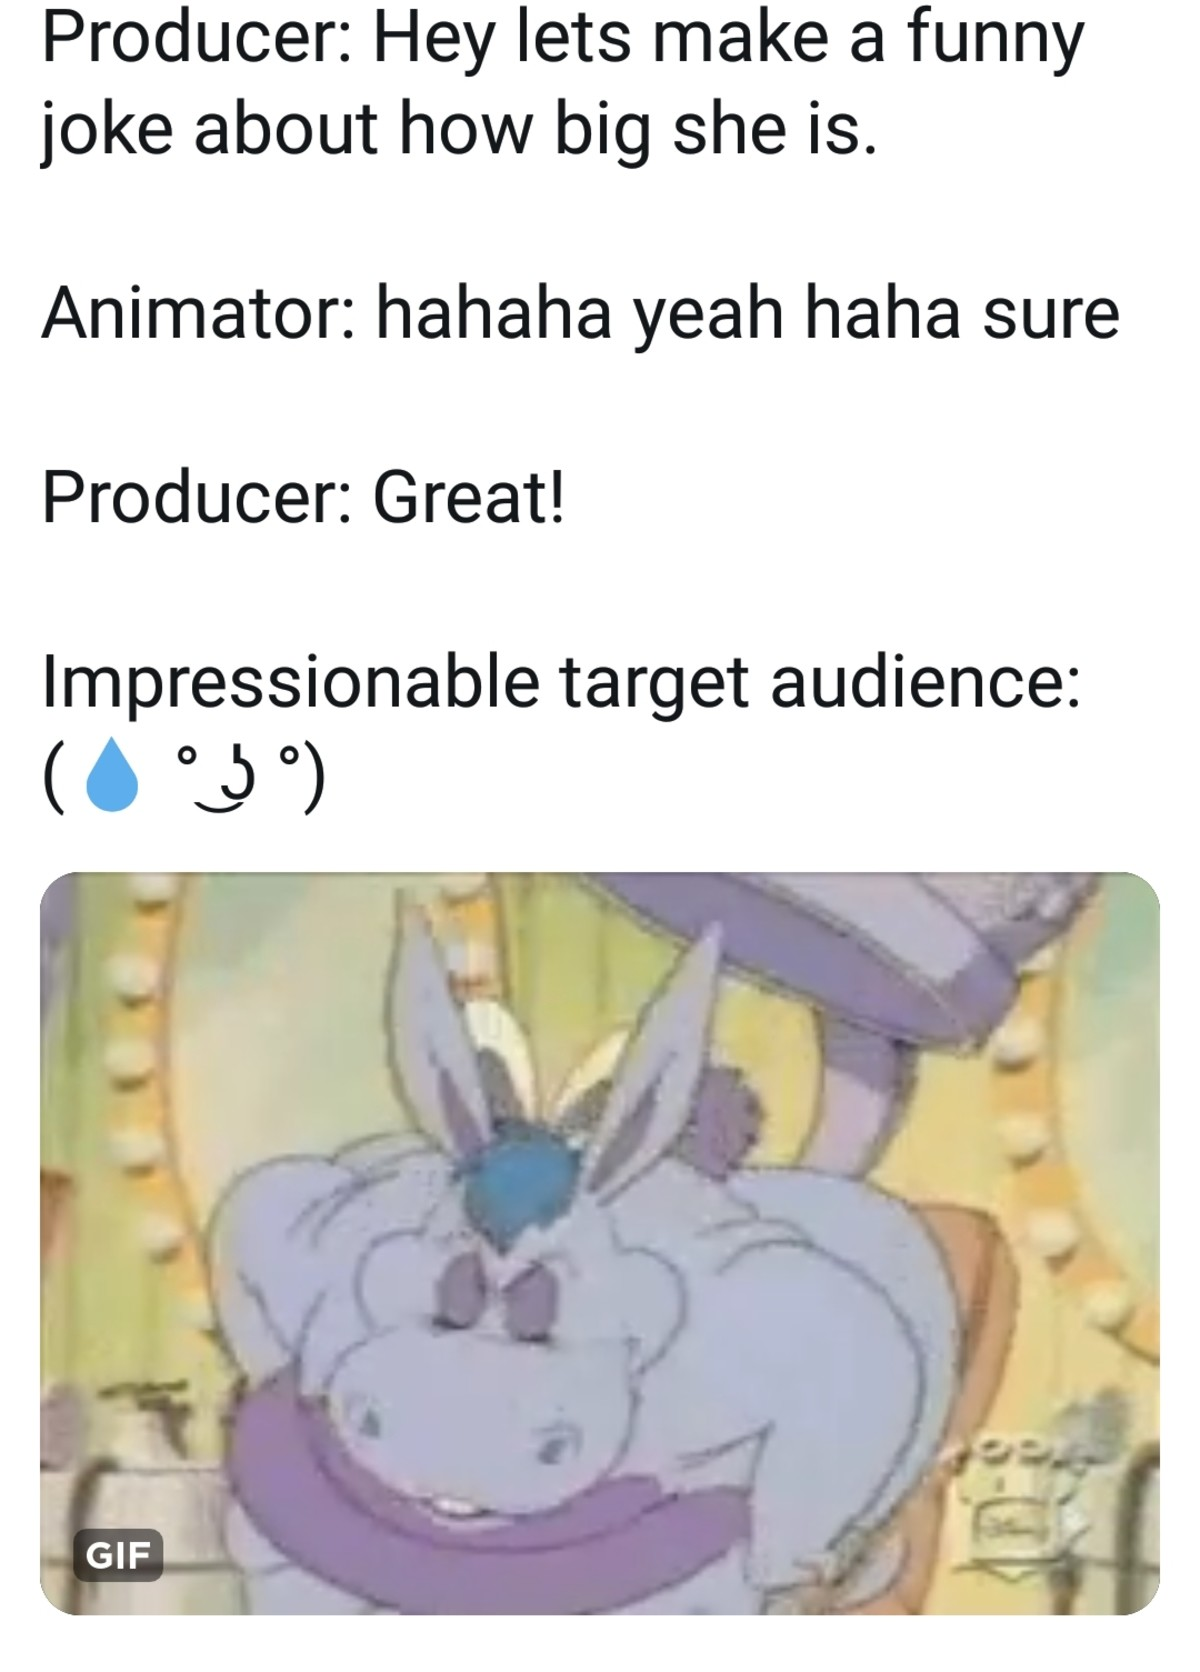 Ooog. join list: Weirdfetishthings (1187 subs)Mention History. Producer: Hey lets make a funny joke about how big she is. Animator: hahaha yeah haha sure Produc